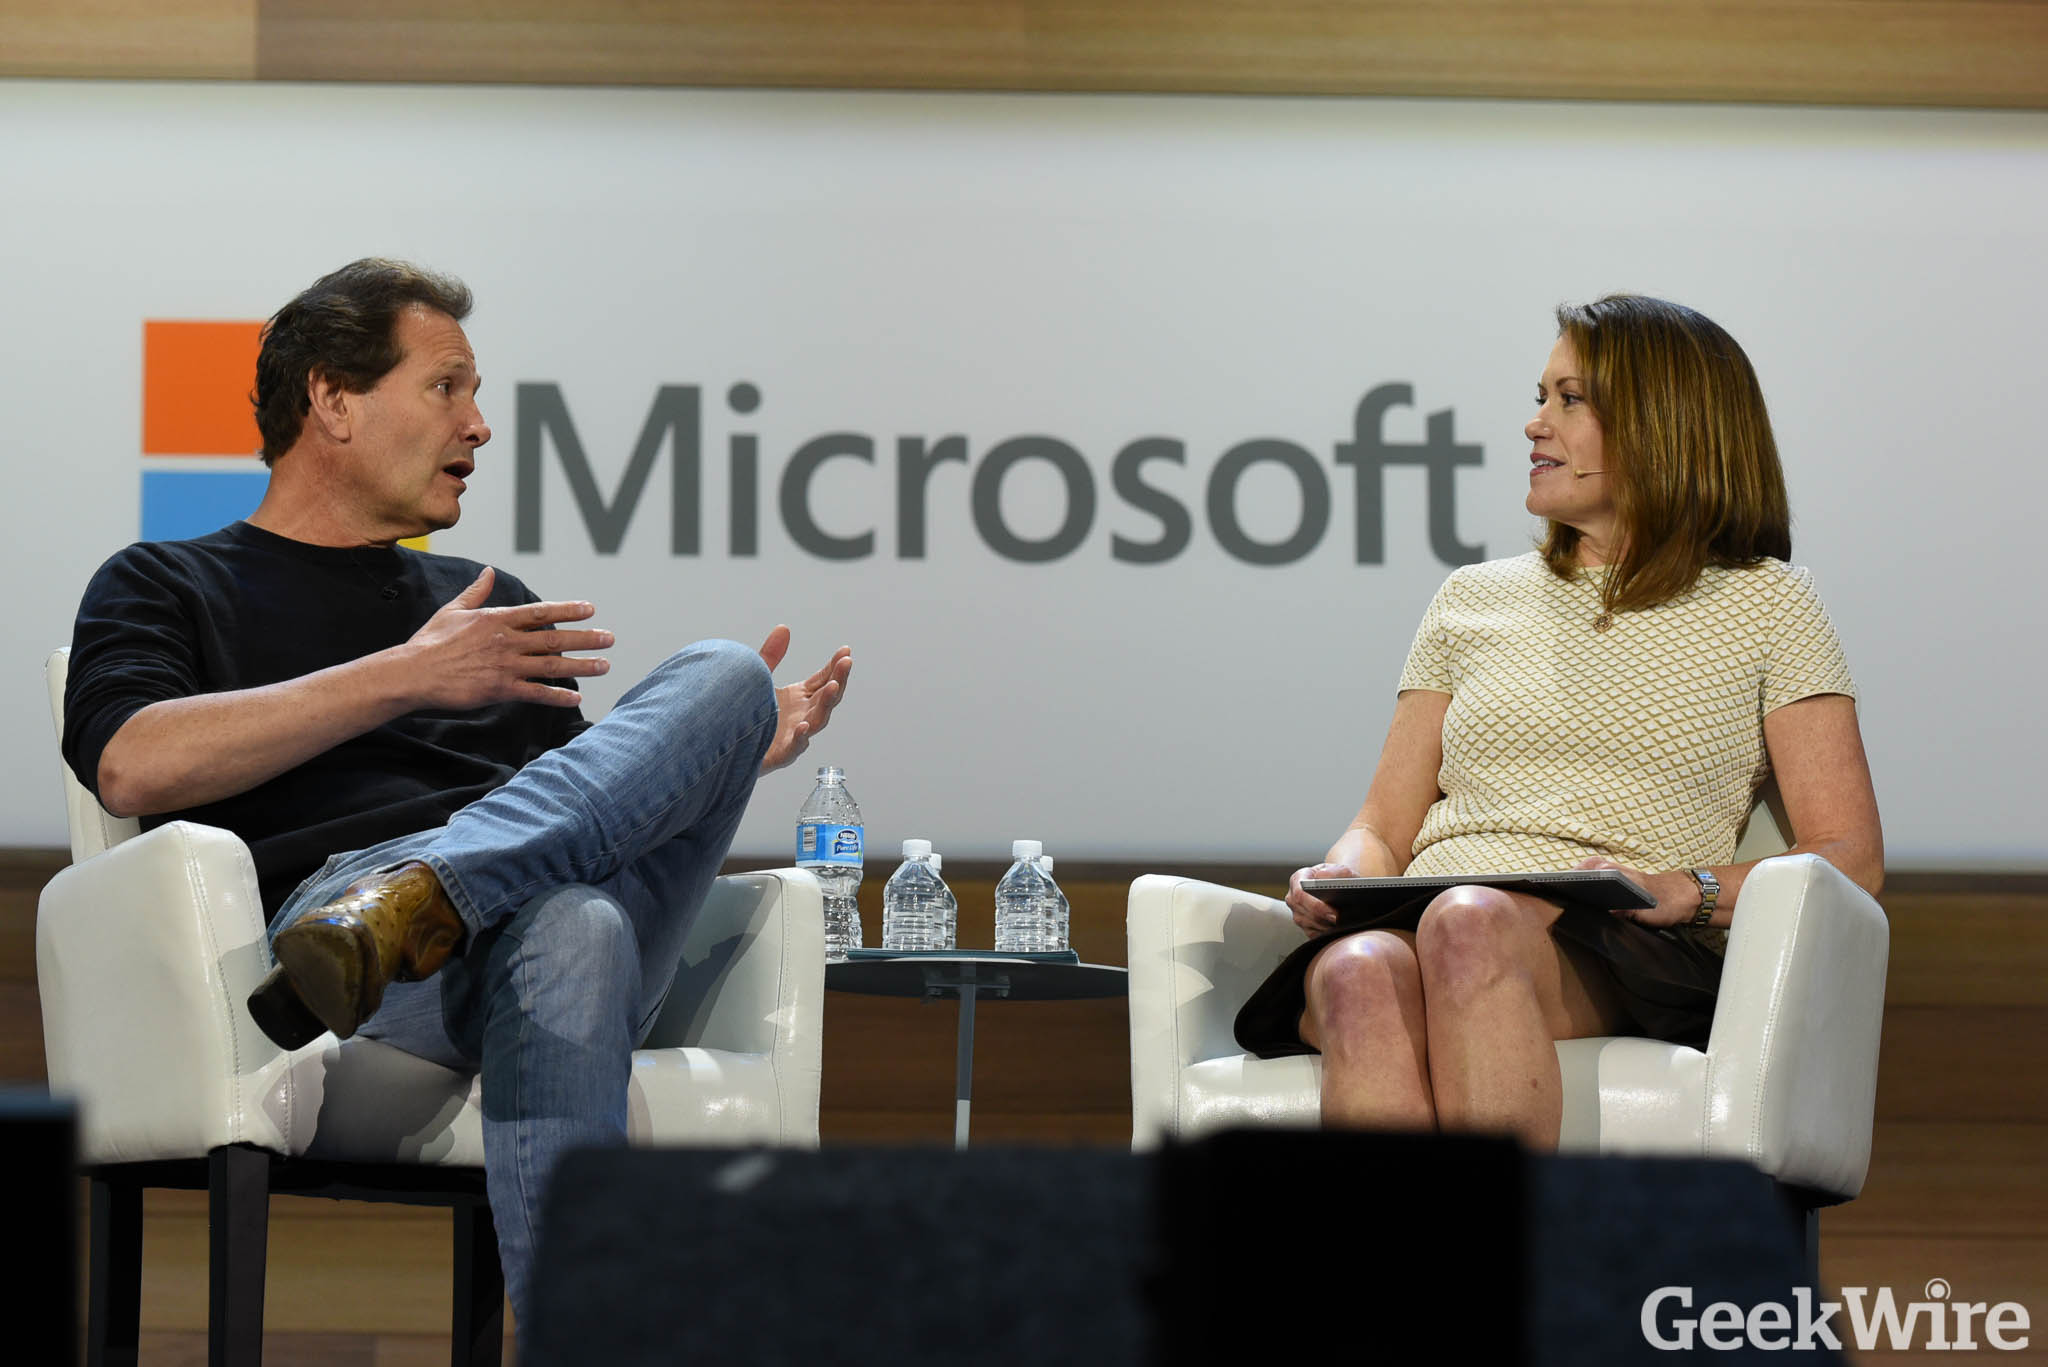 PayPal's Dan Schulman and Microsoft's Peggy Johnson discuss payments and digital currency at Microsoft's Envision conference on Monday in New Orleans